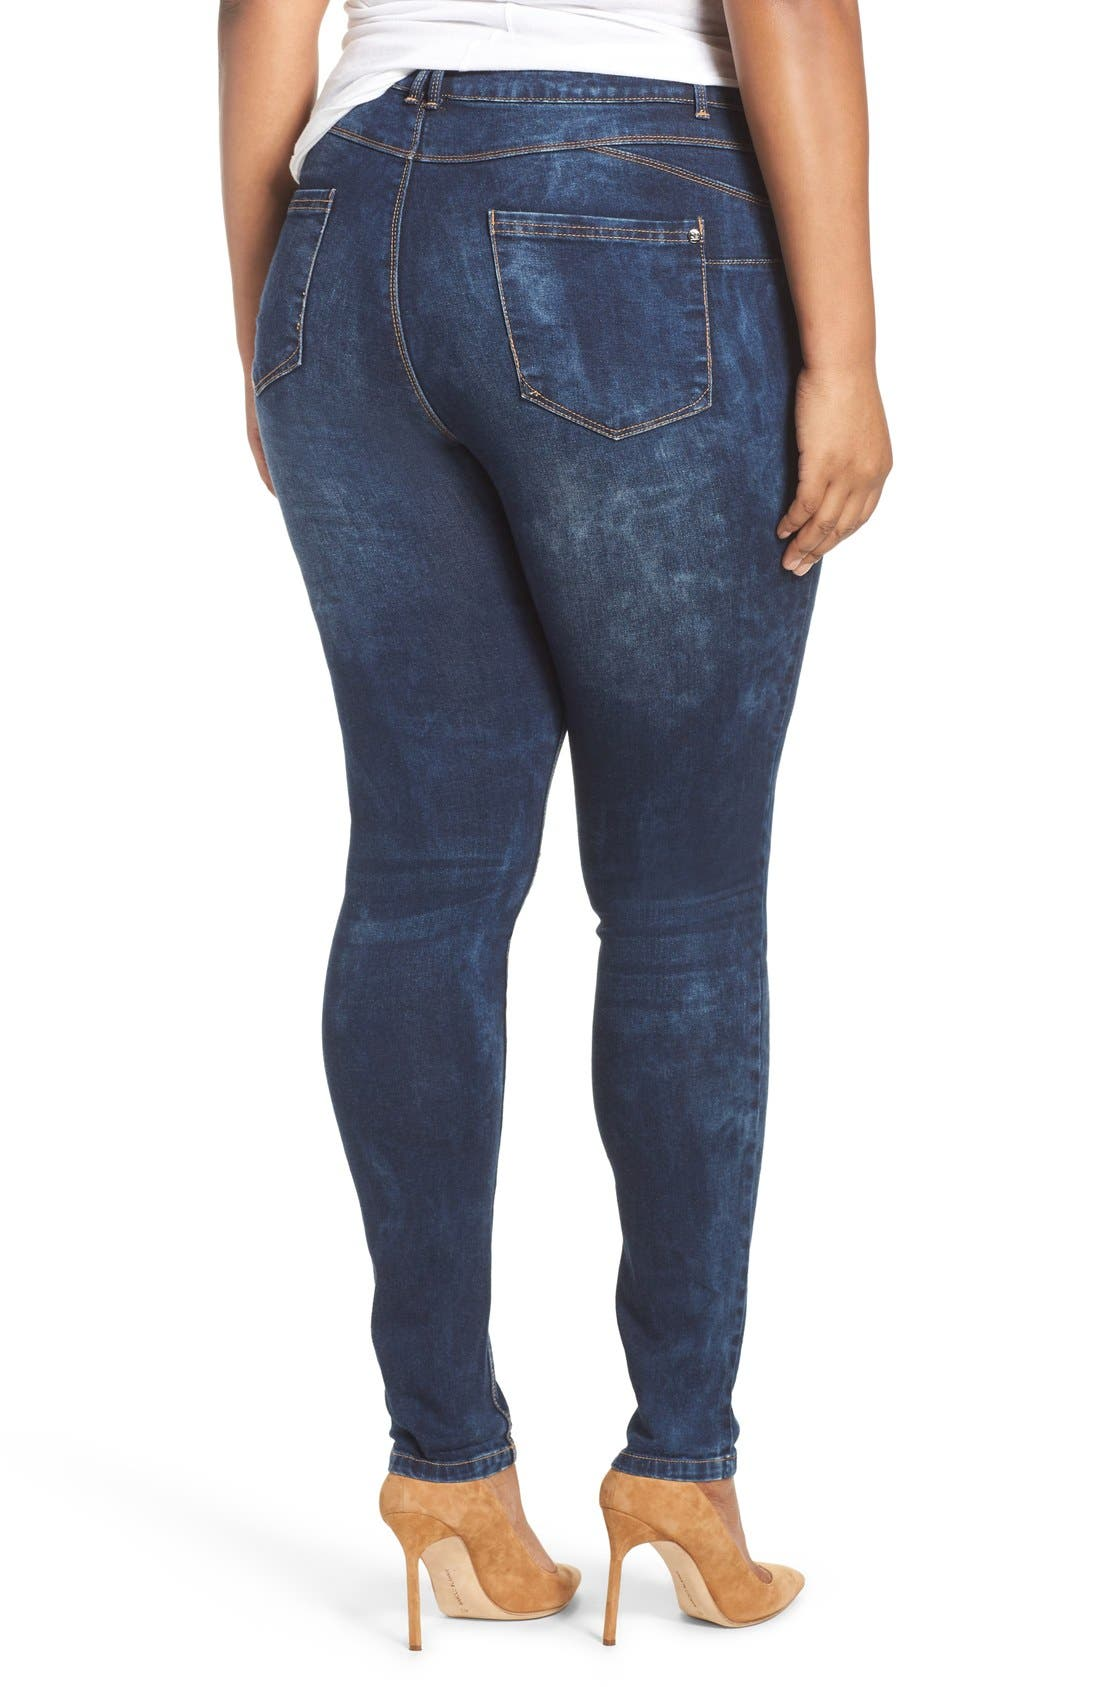 Alternate Image 3  - City Chic 'Dismantle' Ripped Stretch Skinny Jeans (Plus Size)